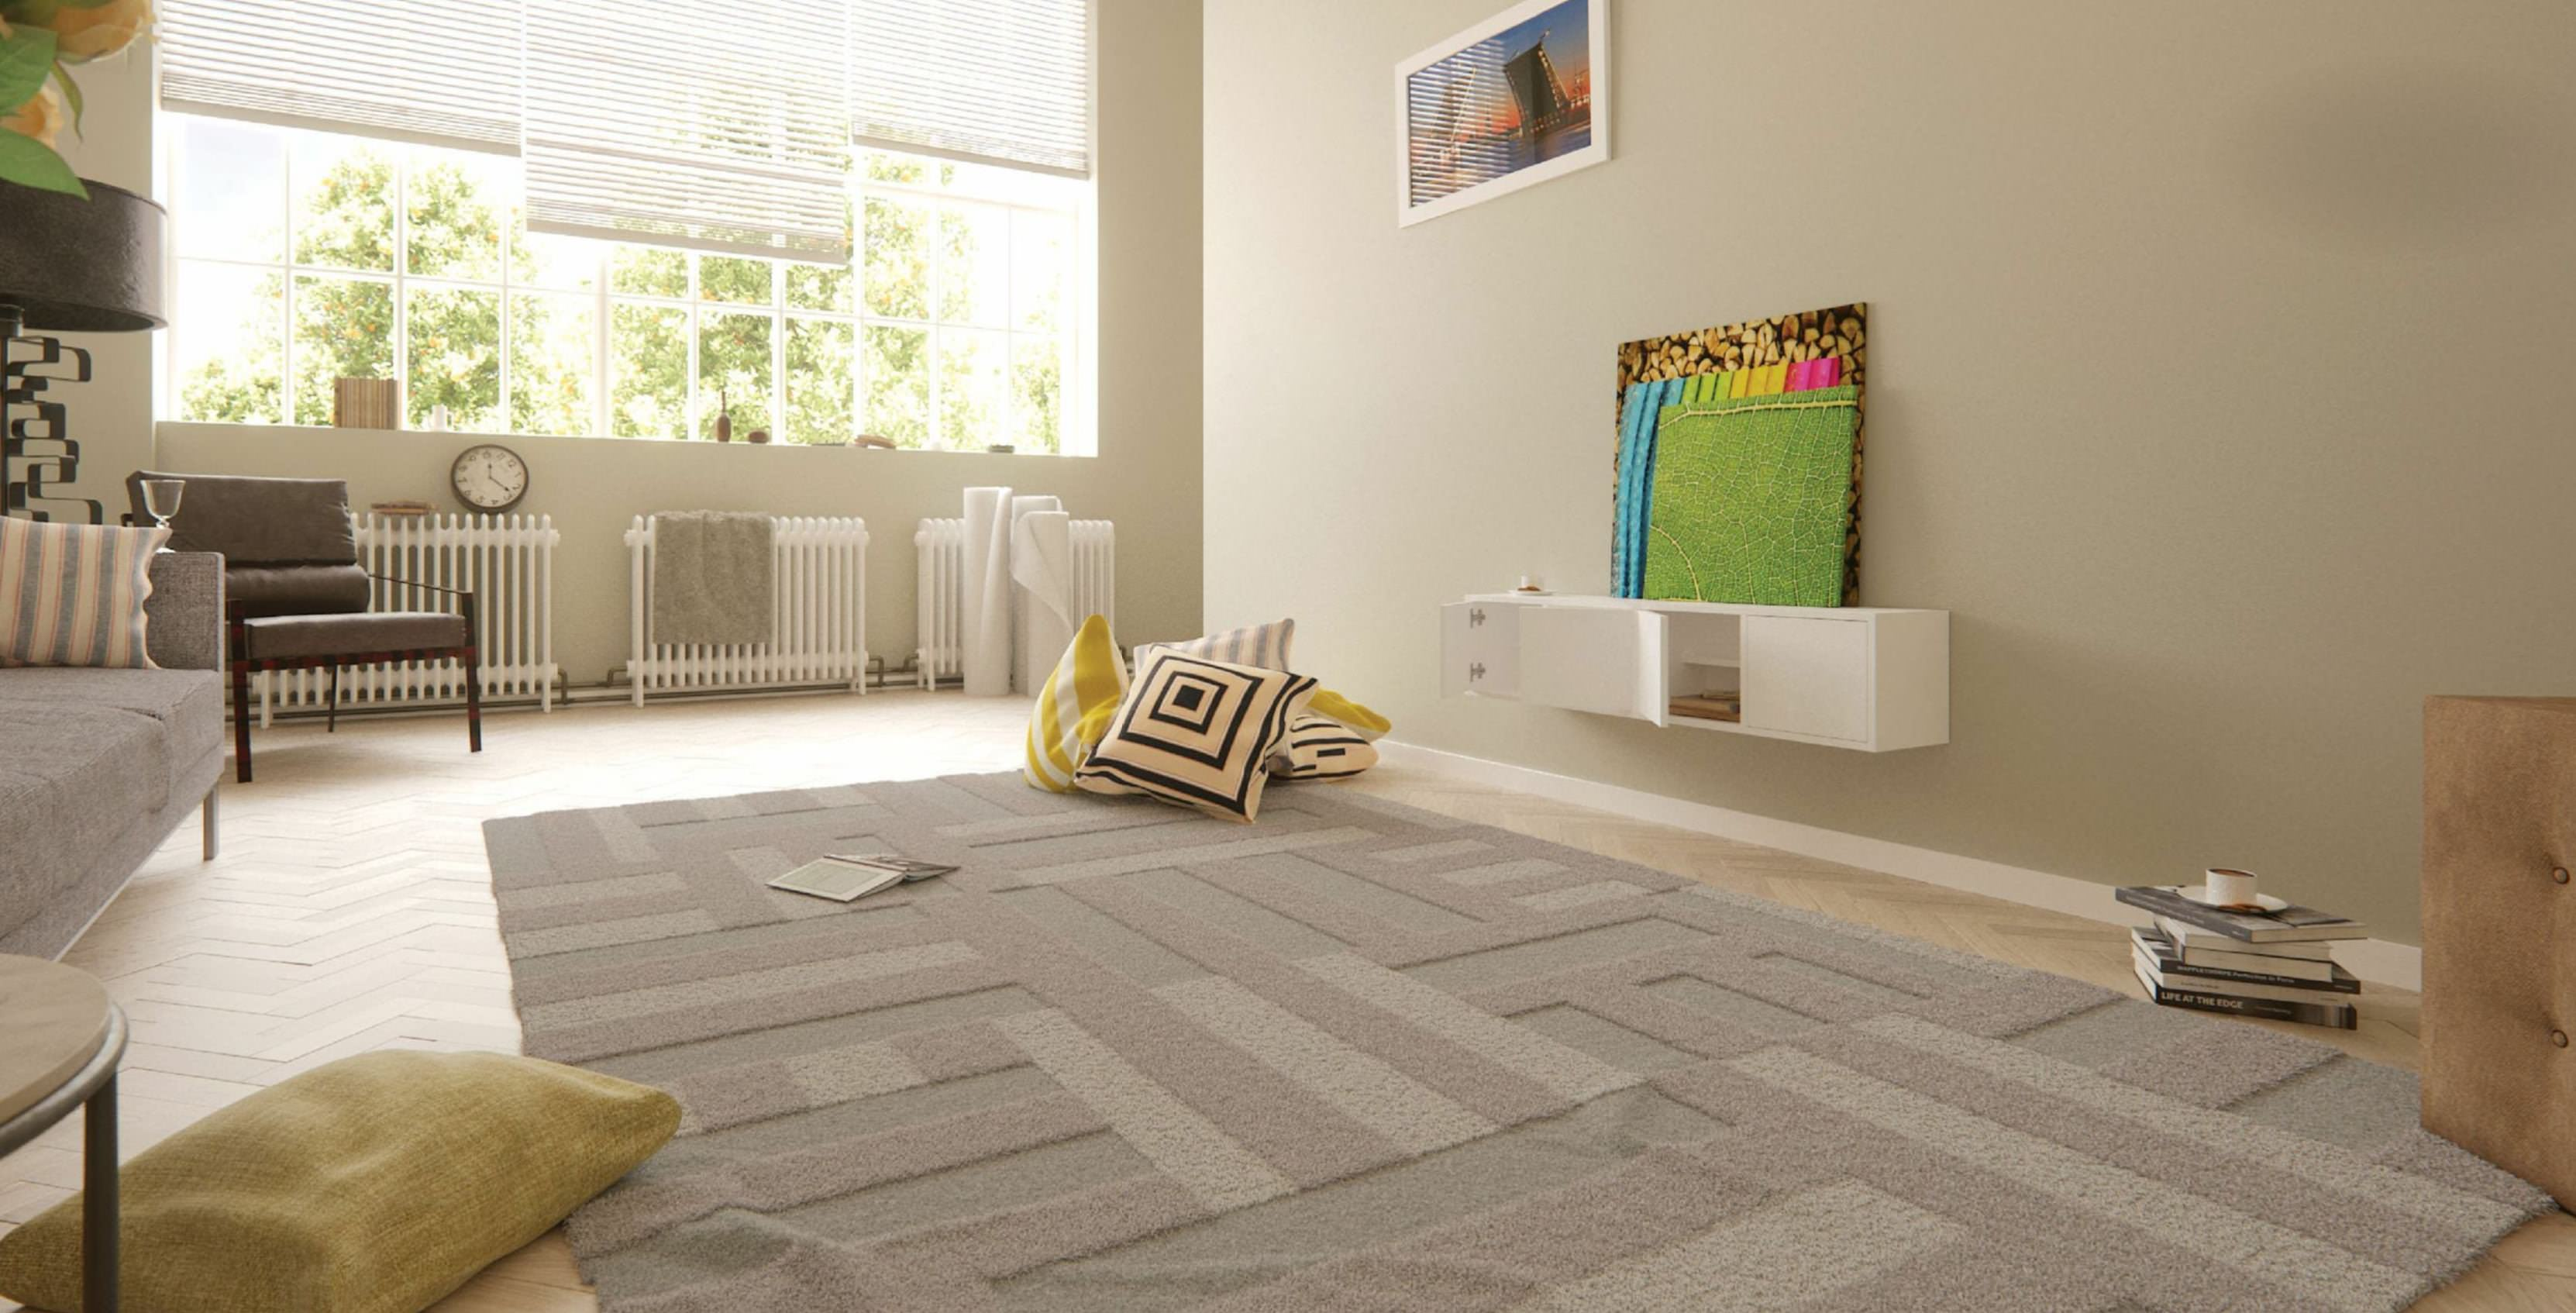 Create Parquet Floors And Rugs